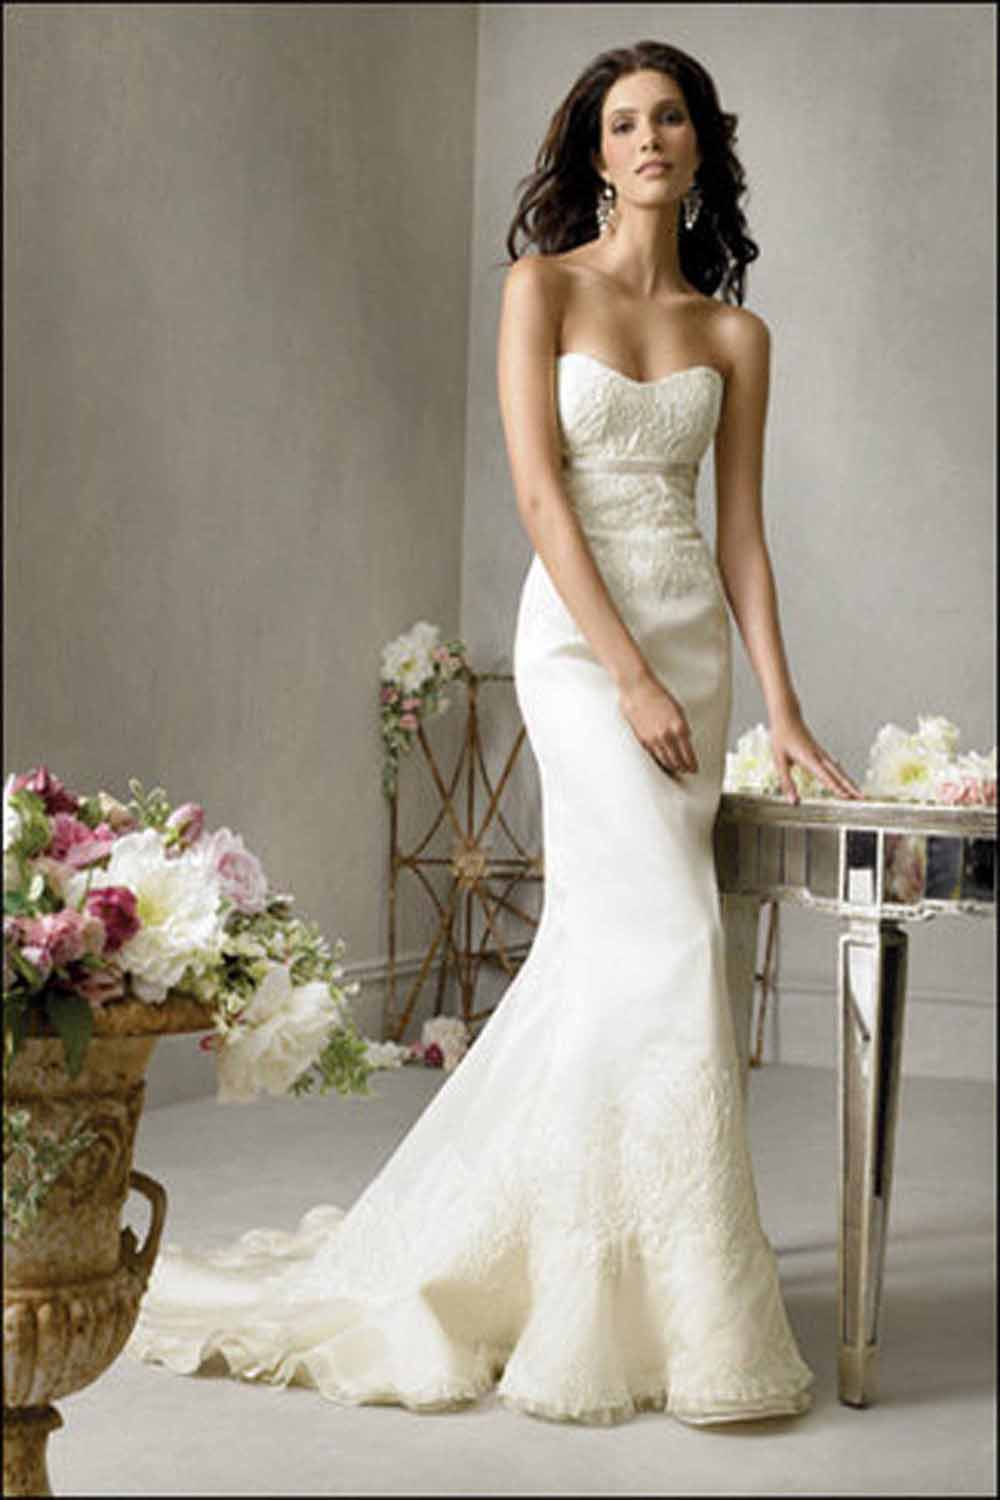 Browse beautiful Mermaid wedding dresses and find the perfect gown to suit your bridal style. Choose from s of bridal gowns and then find your nearest stockist.